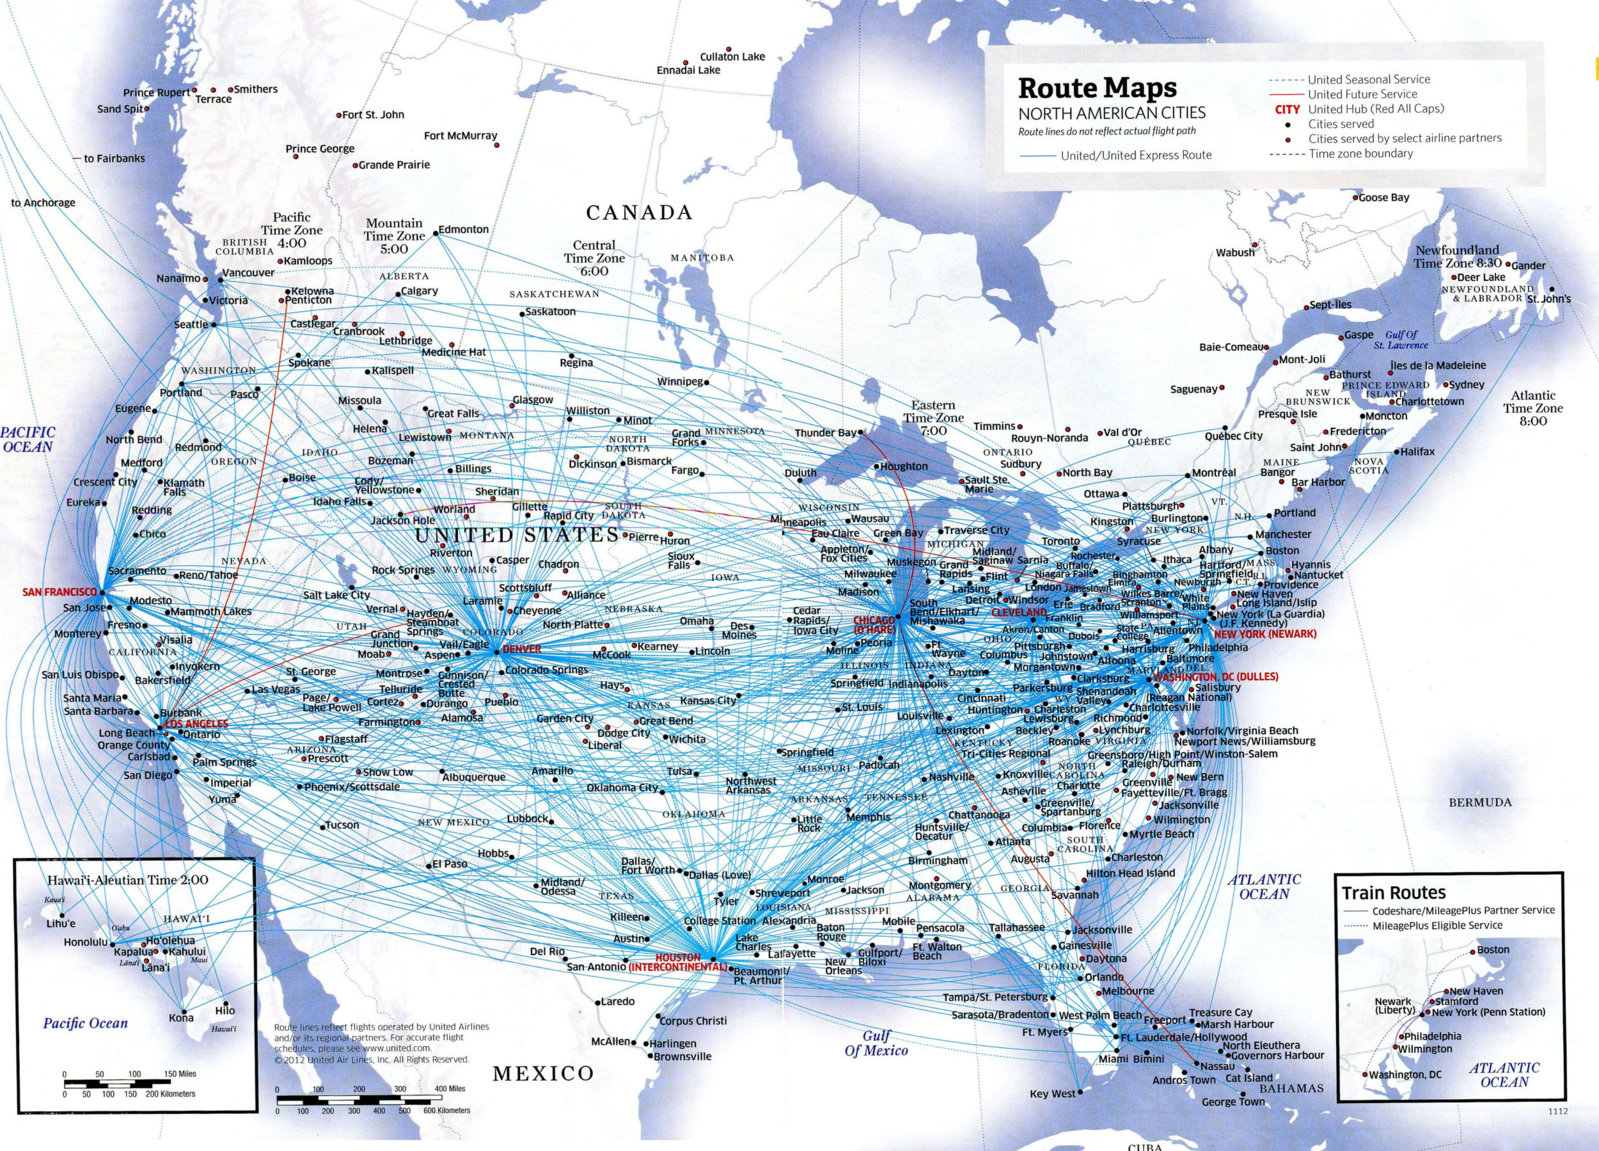 United airlines 1966 route map video metabunk publicscrutiny Choice Image